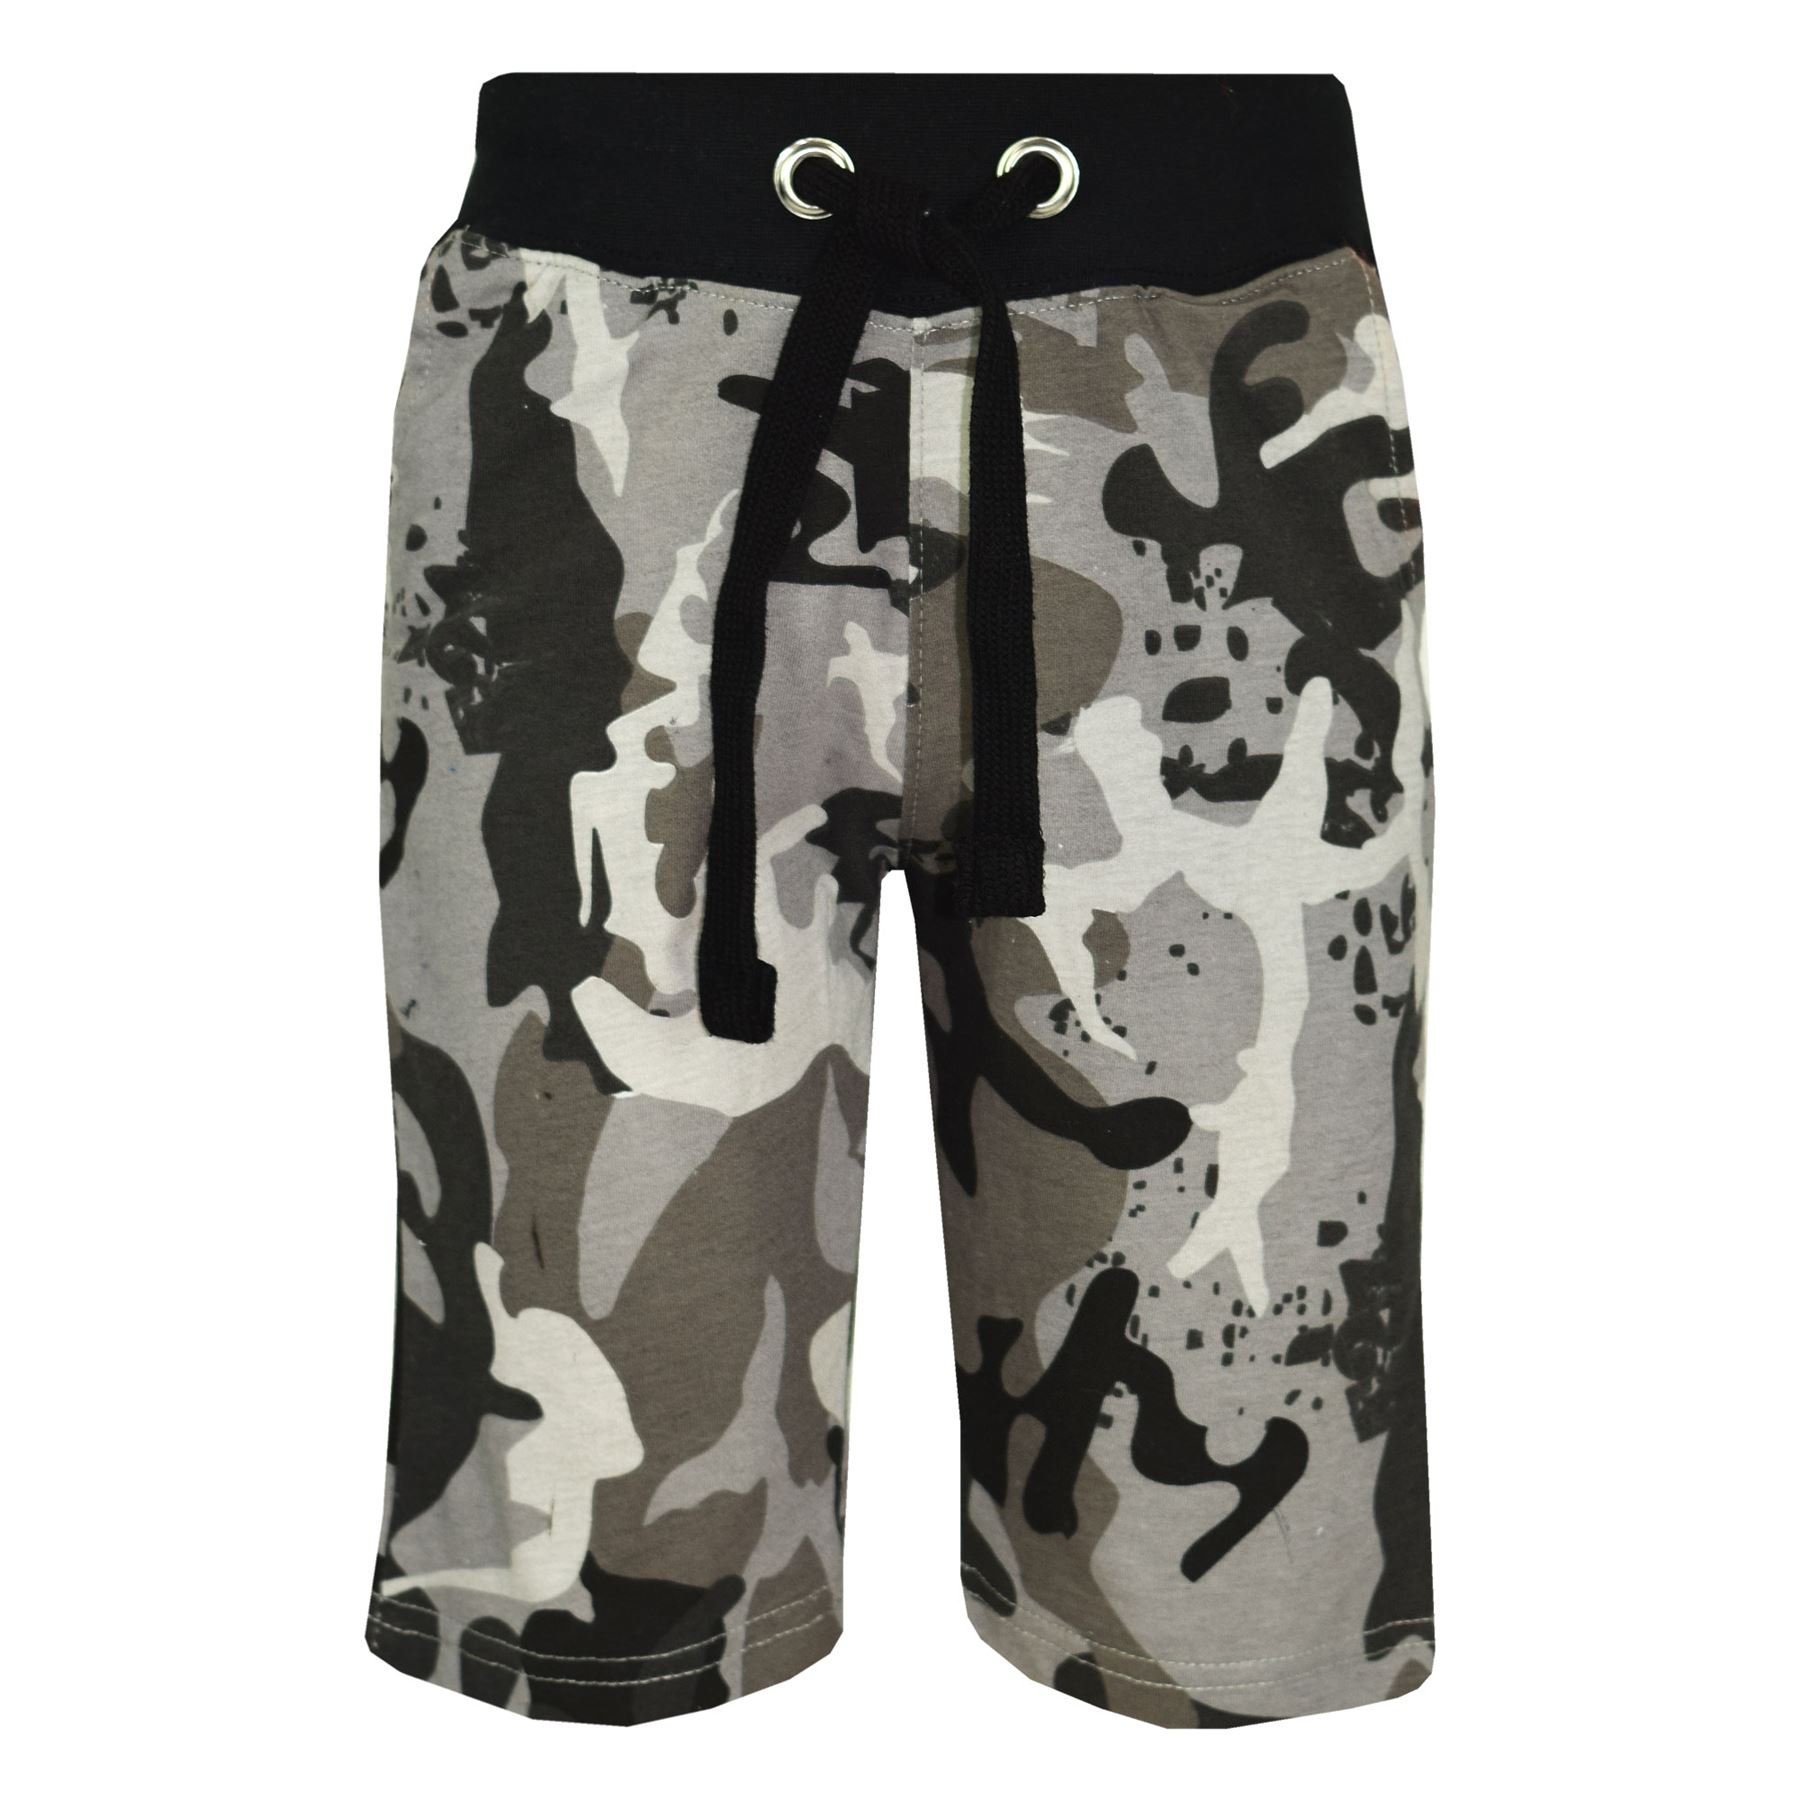 Kids Girls Boys Shorts Fleece Camouflage Chino Short Knee Length Half Pant 3-13Y